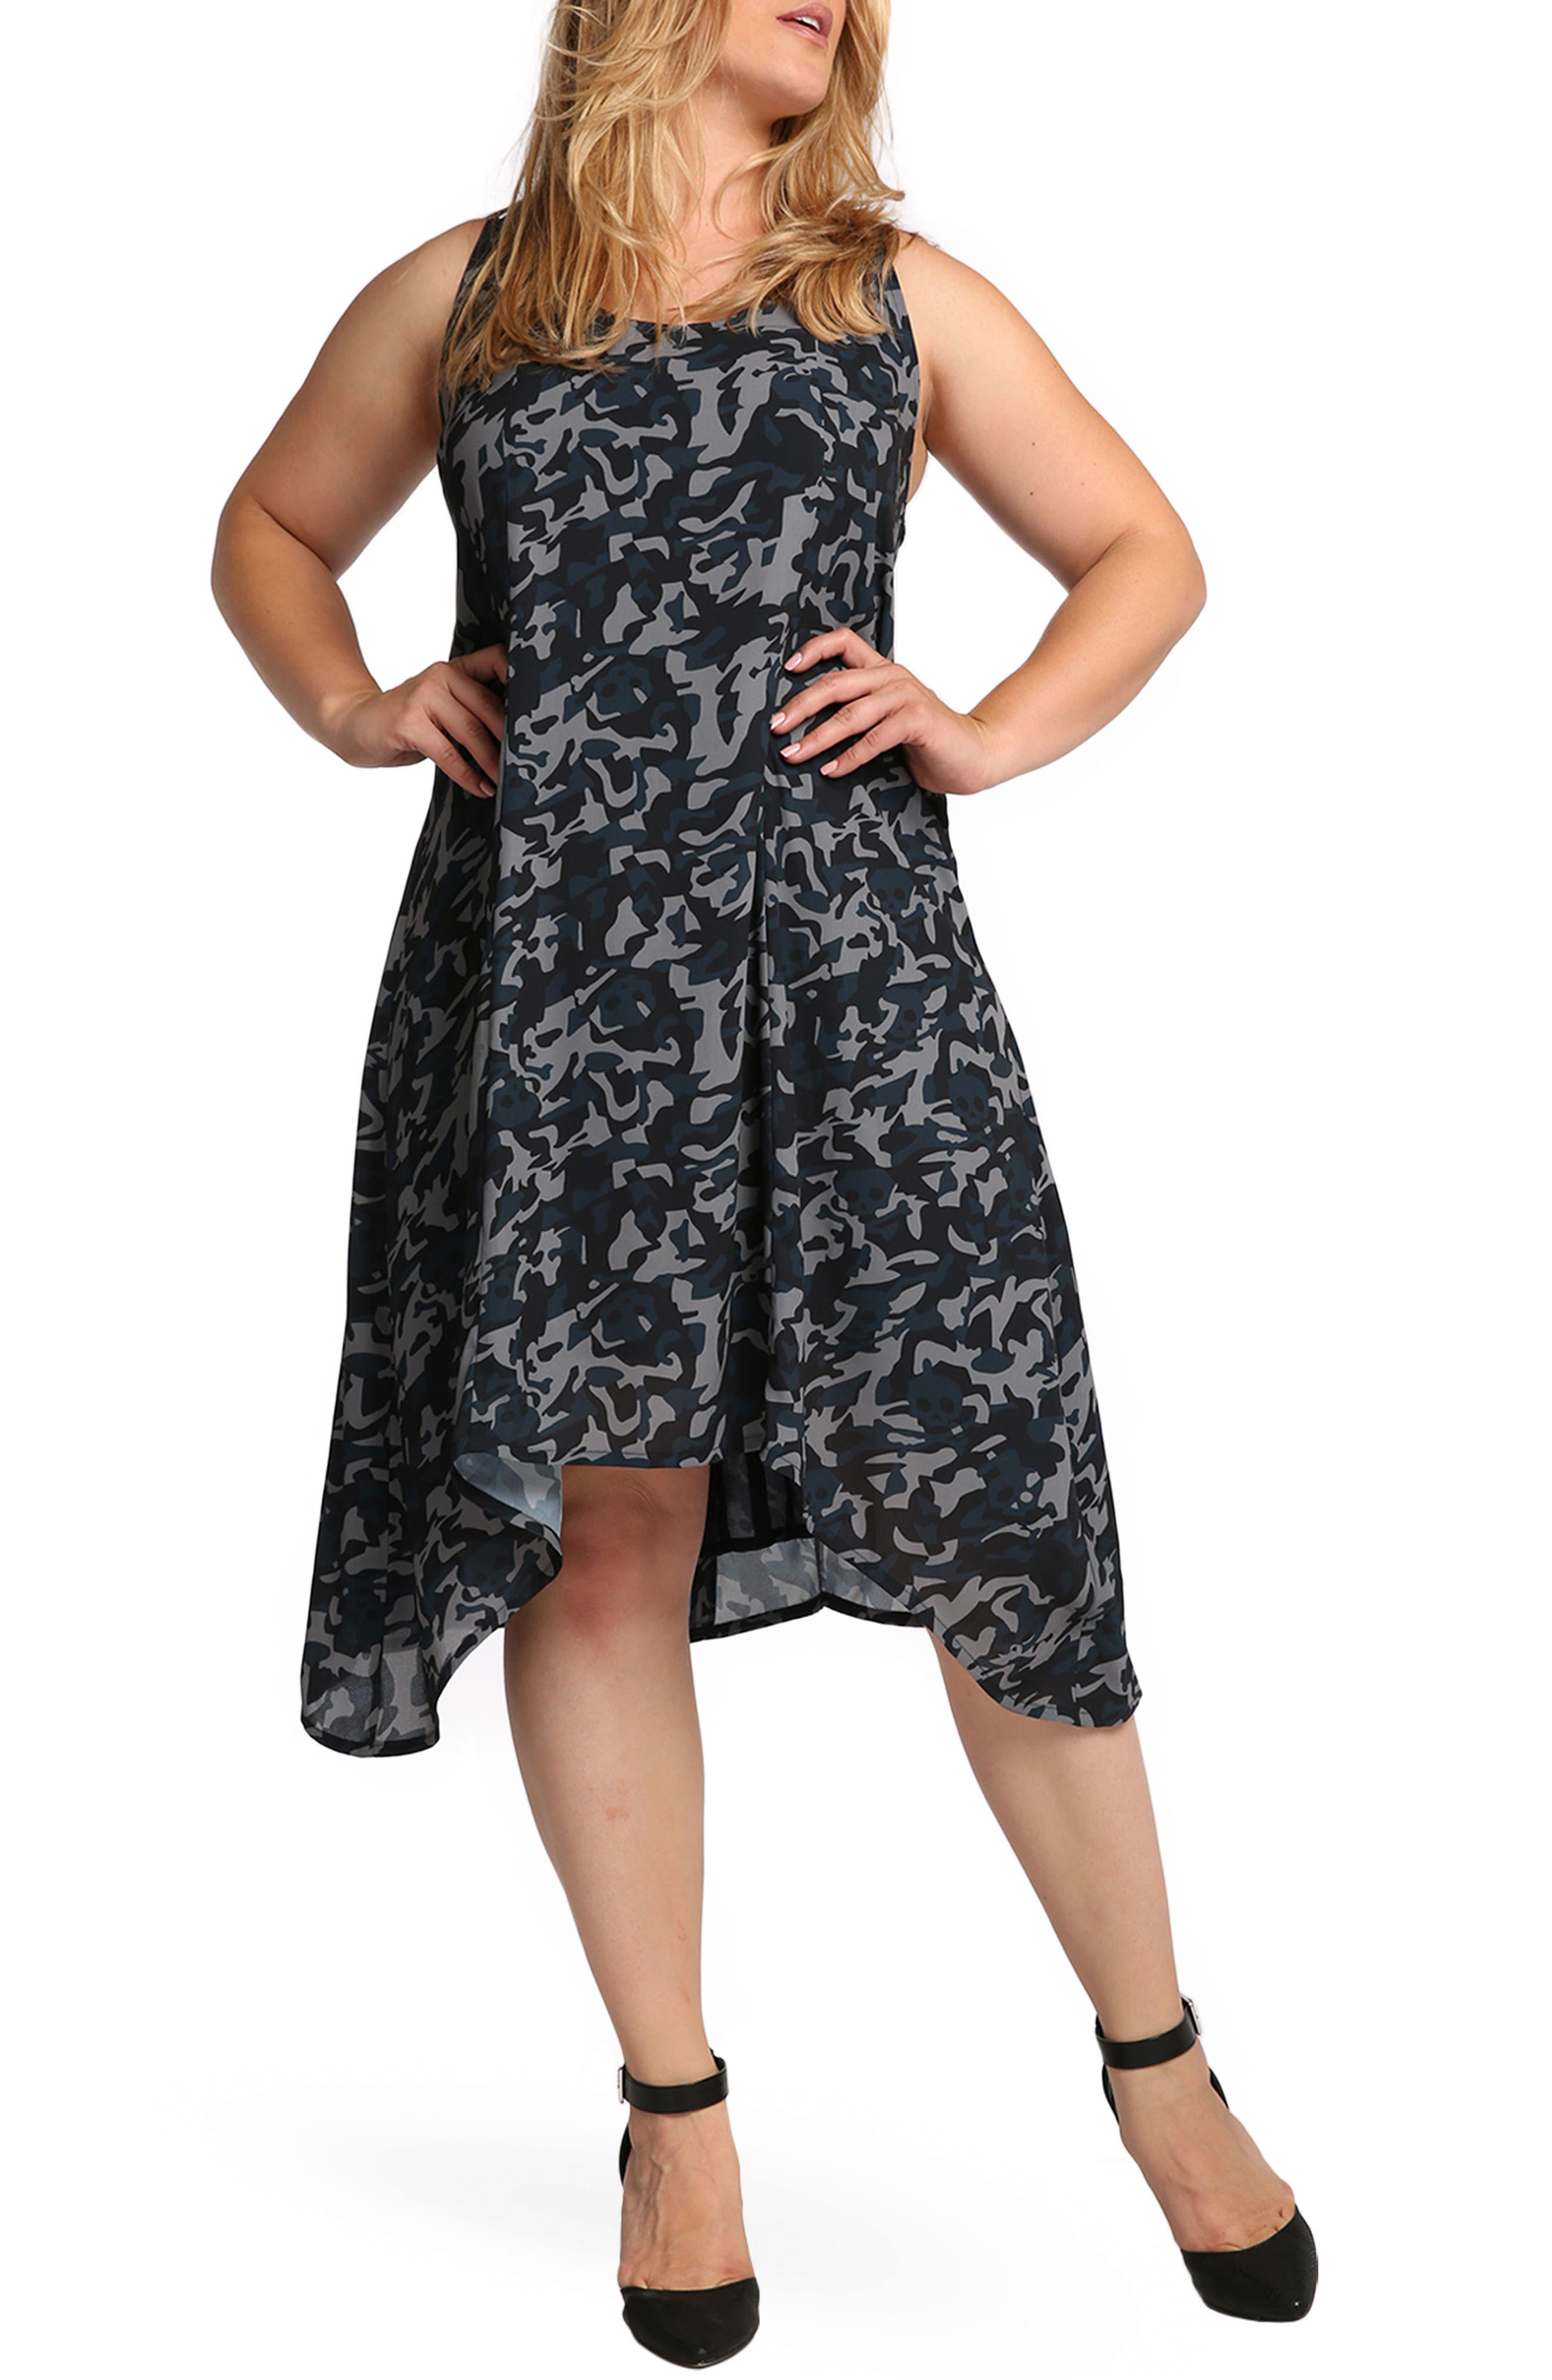 Alternate Image 1 Selected - Standards & Practices Ace Camo Print Tank Dress (Plus Size)